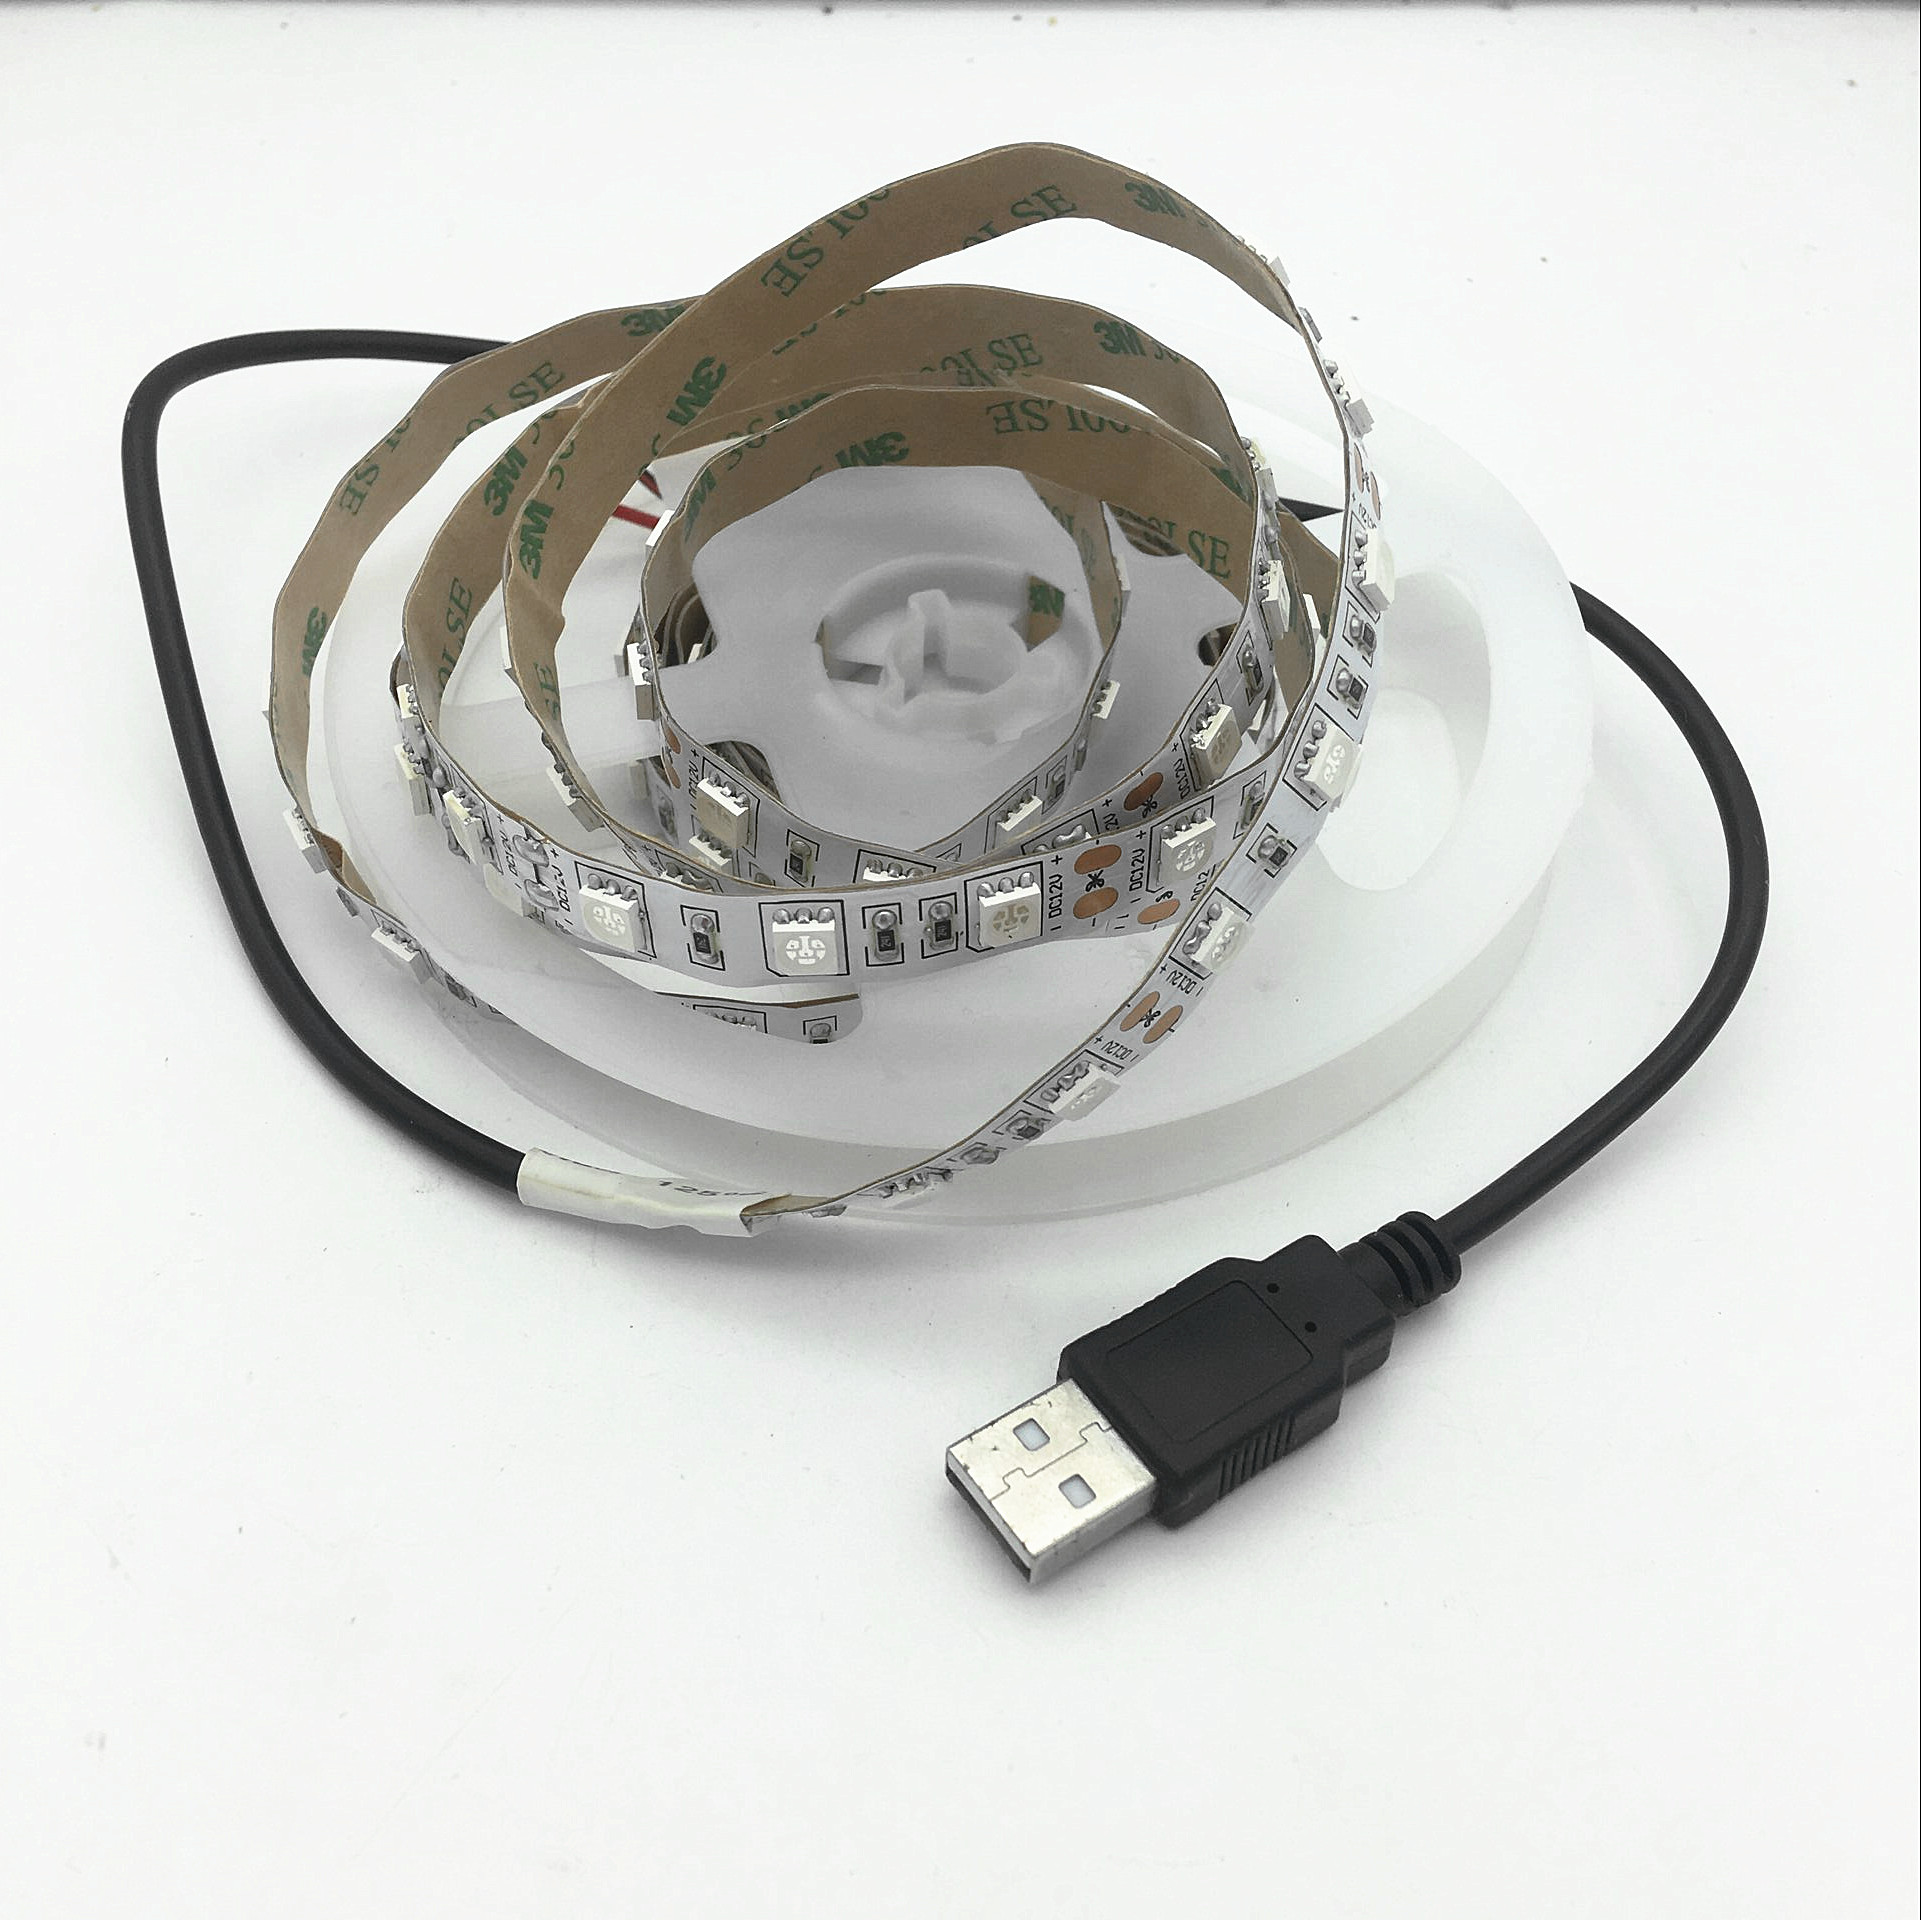 0.5m 1m 1.5m 2m 3m 5m <font><b>UV</b></font> Ultraviolet <font><b>LED</b></font> <font><b>Strip</b></font> Light Nowaterproof DC5V Flexible SMD 5050 30leds/m <font><b>LED</b></font> Diode Tape With USB Wiren image